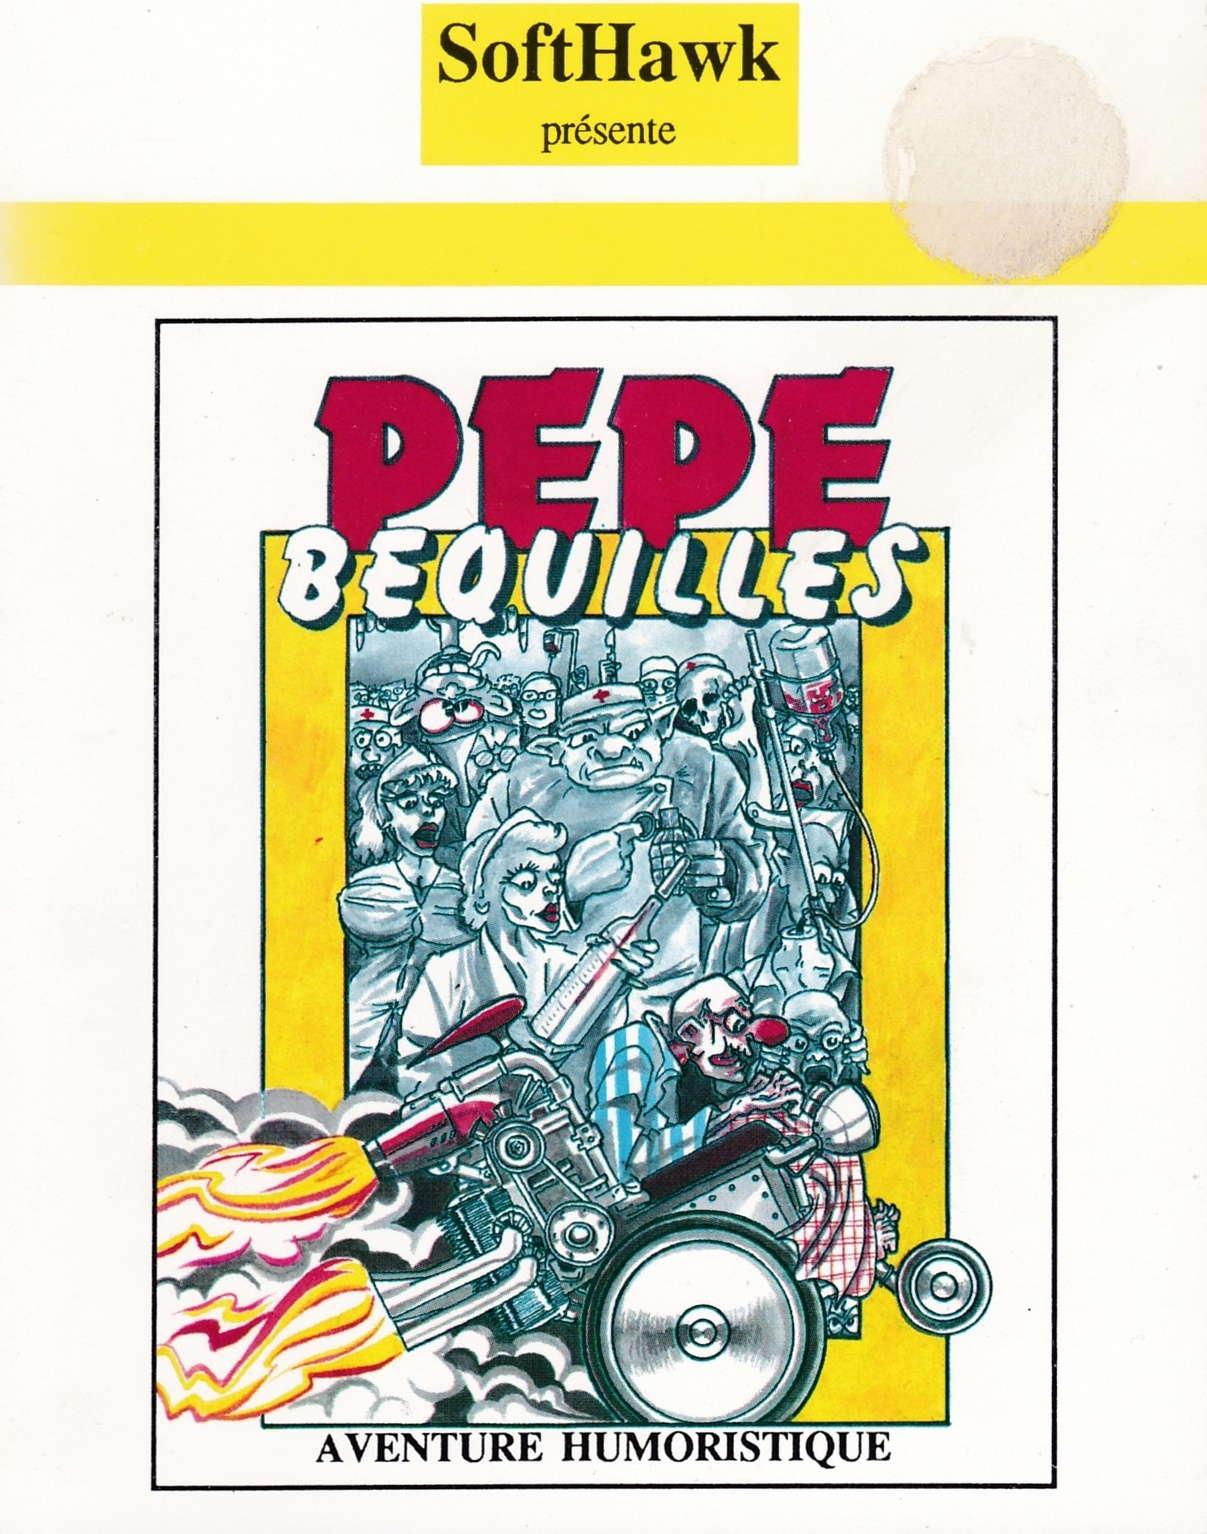 cover of the Amstrad CPC game Pepe Bequilles  by GameBase CPC